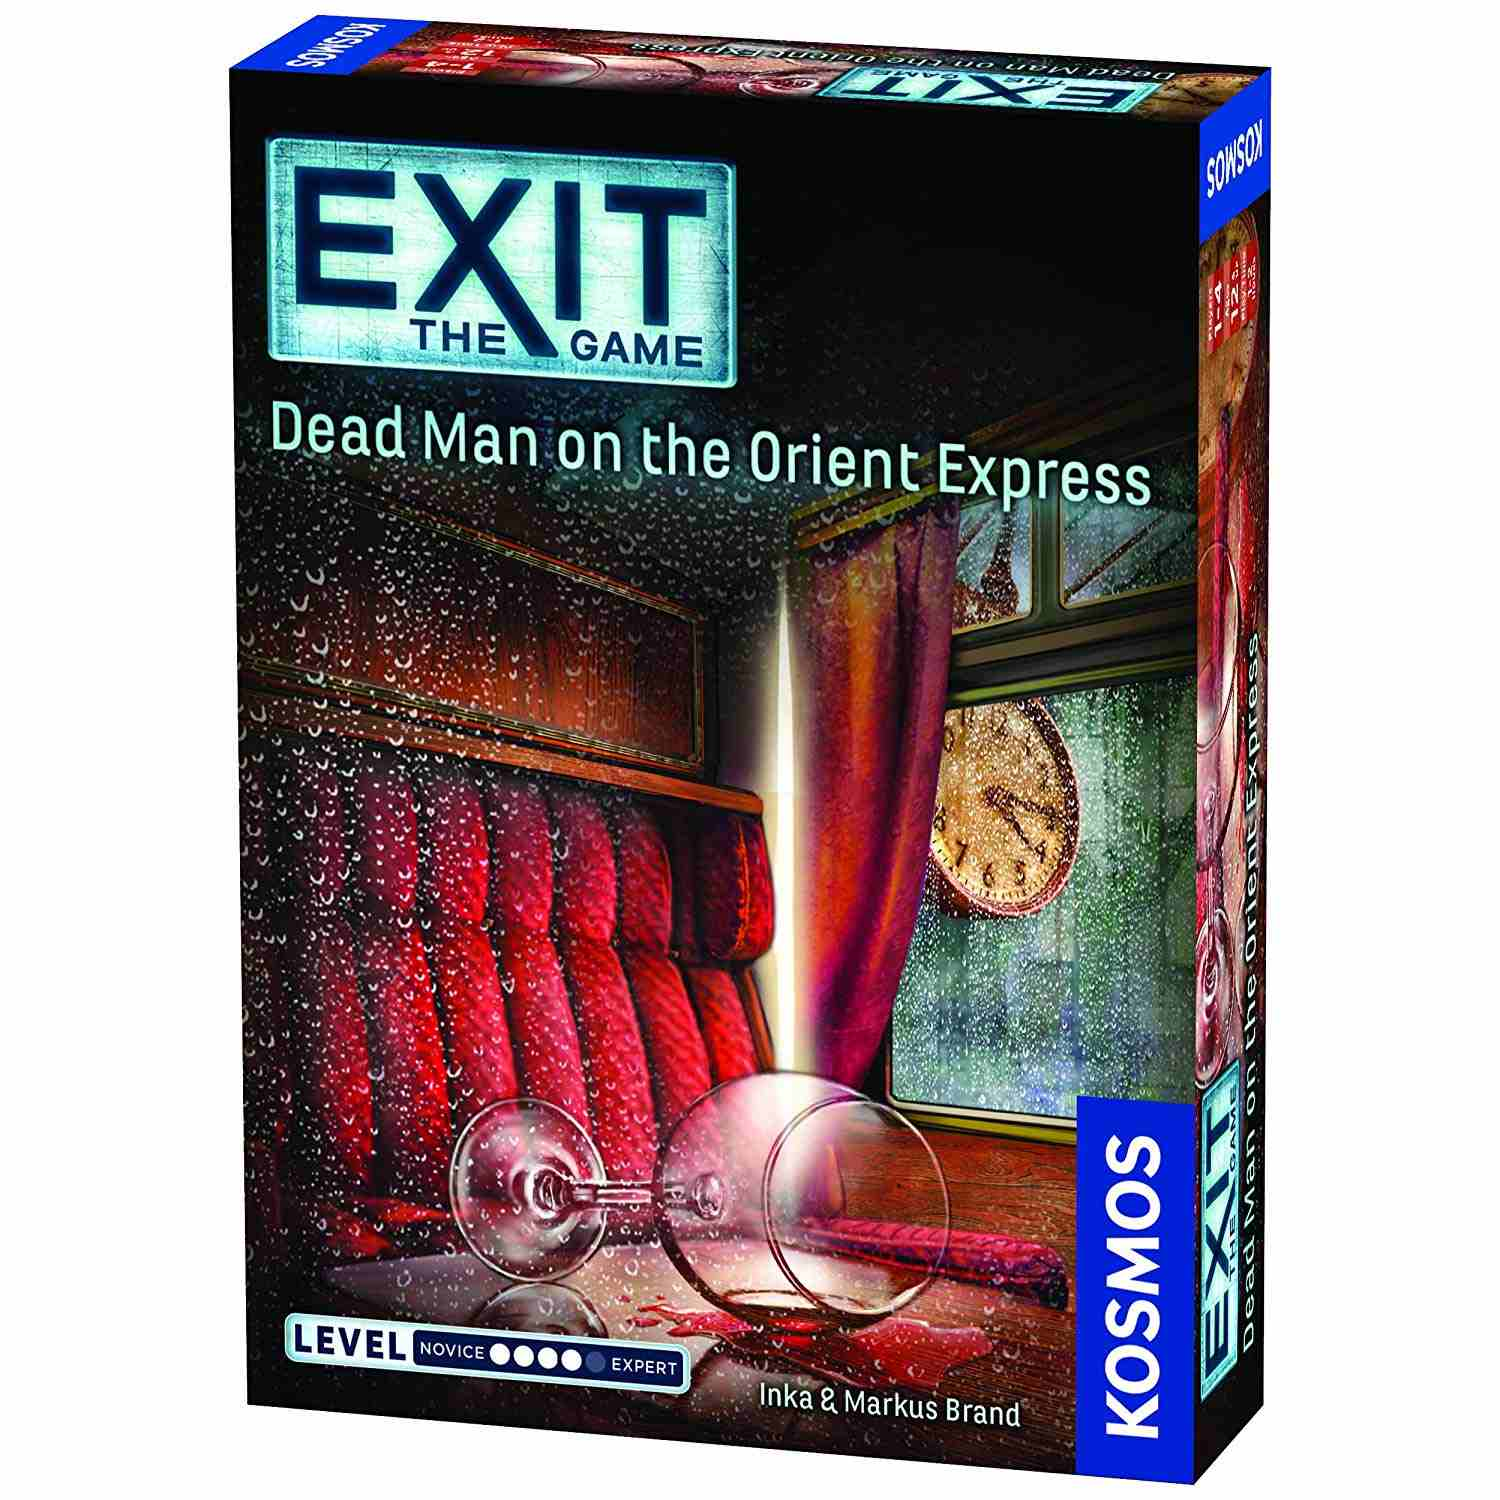 Exit the Game: Dead Man on the Orient Express box